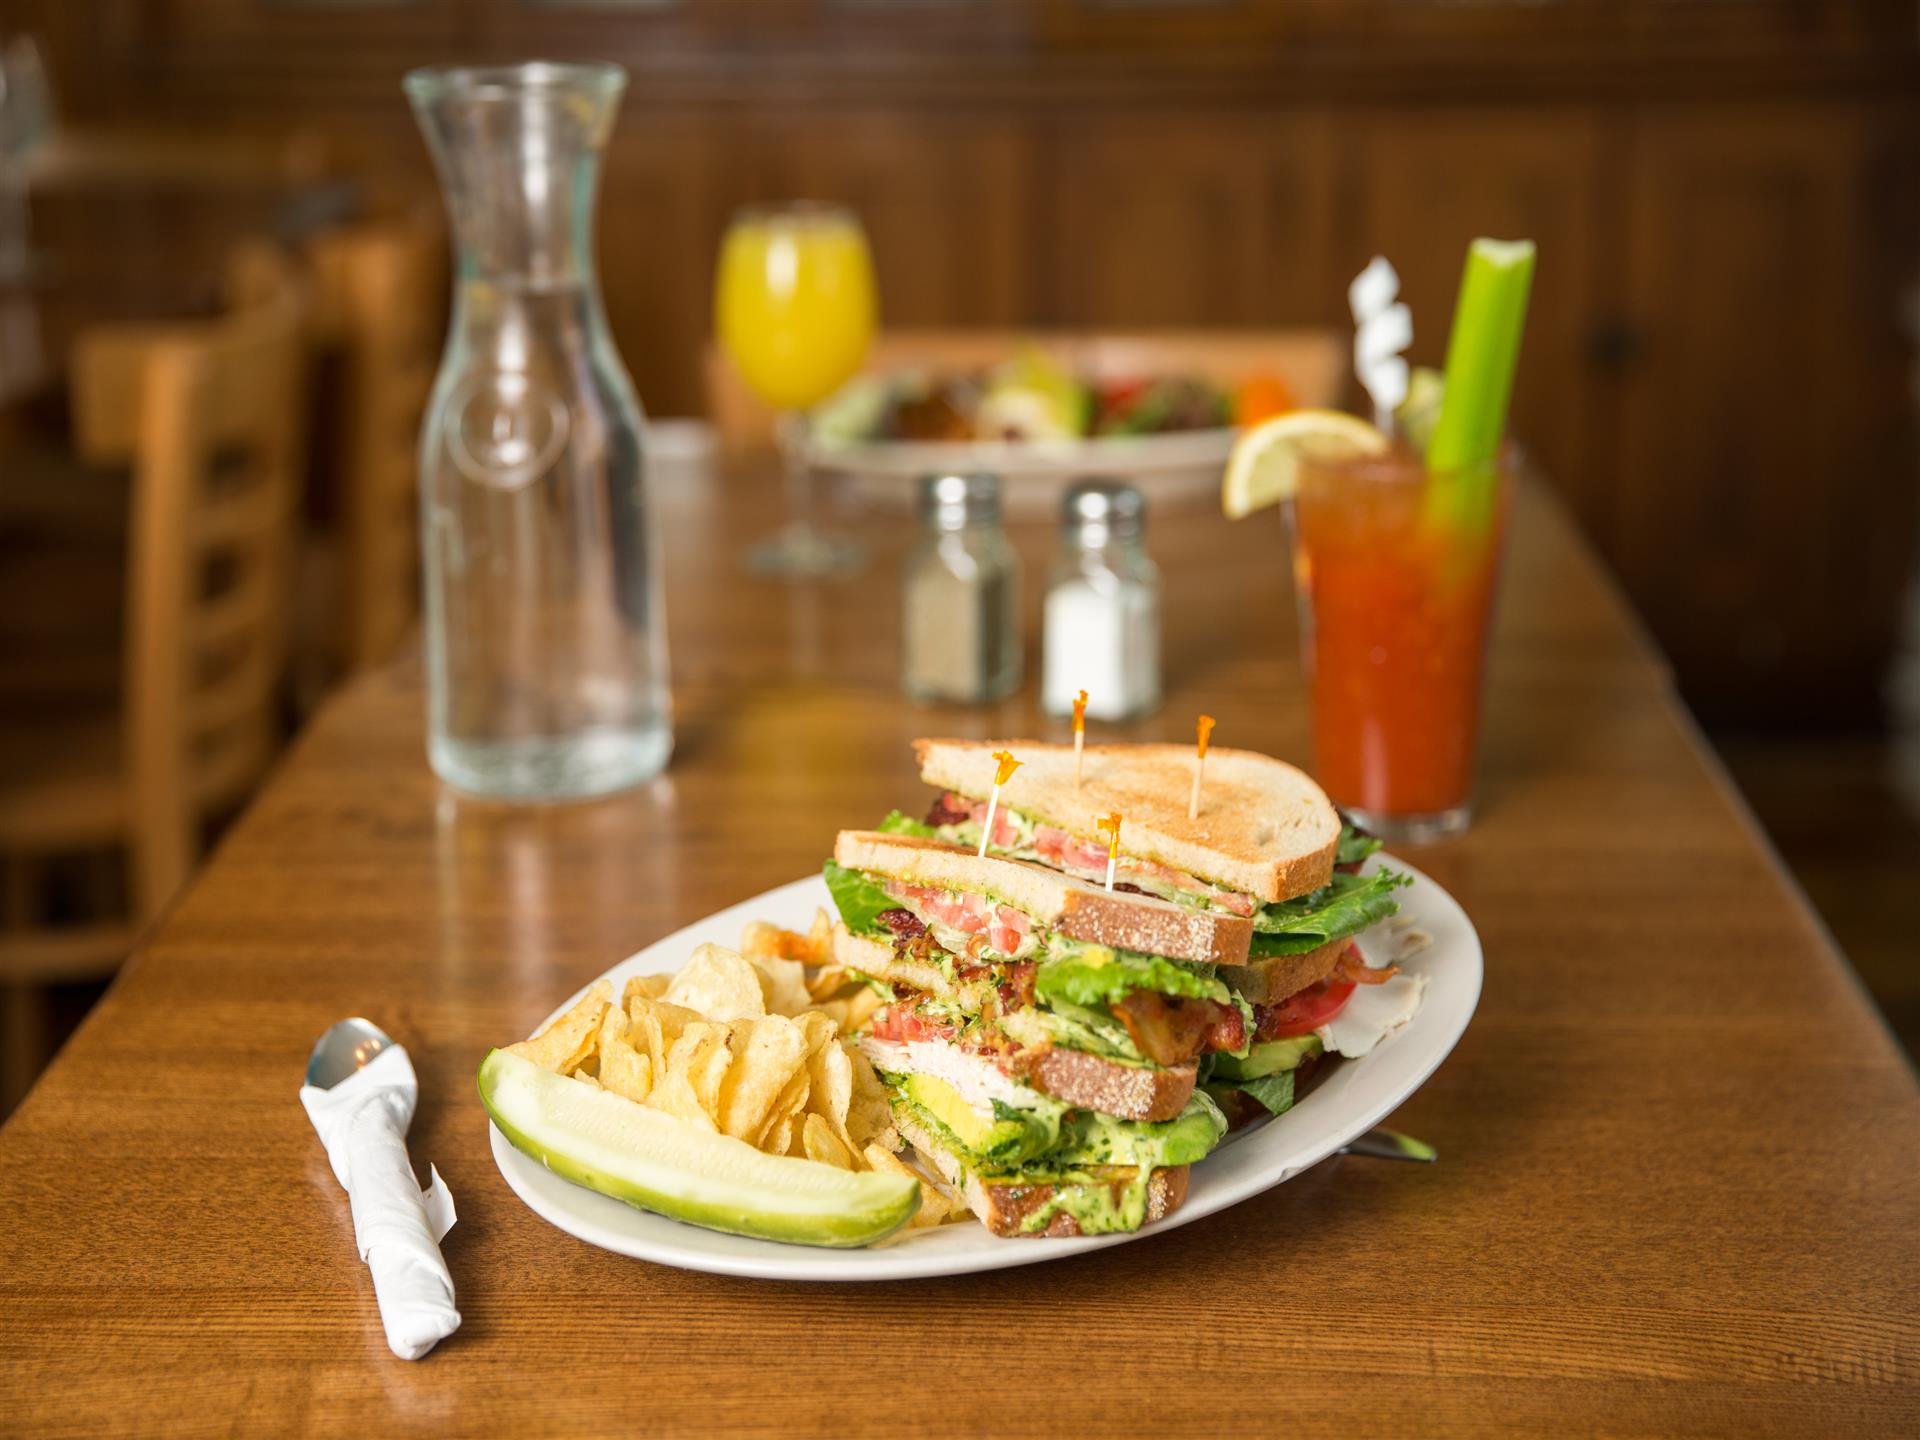 Club sandwiches, chips, pickle, salt and pepper shakers, bloody mary with celery and water carafe on light brown table